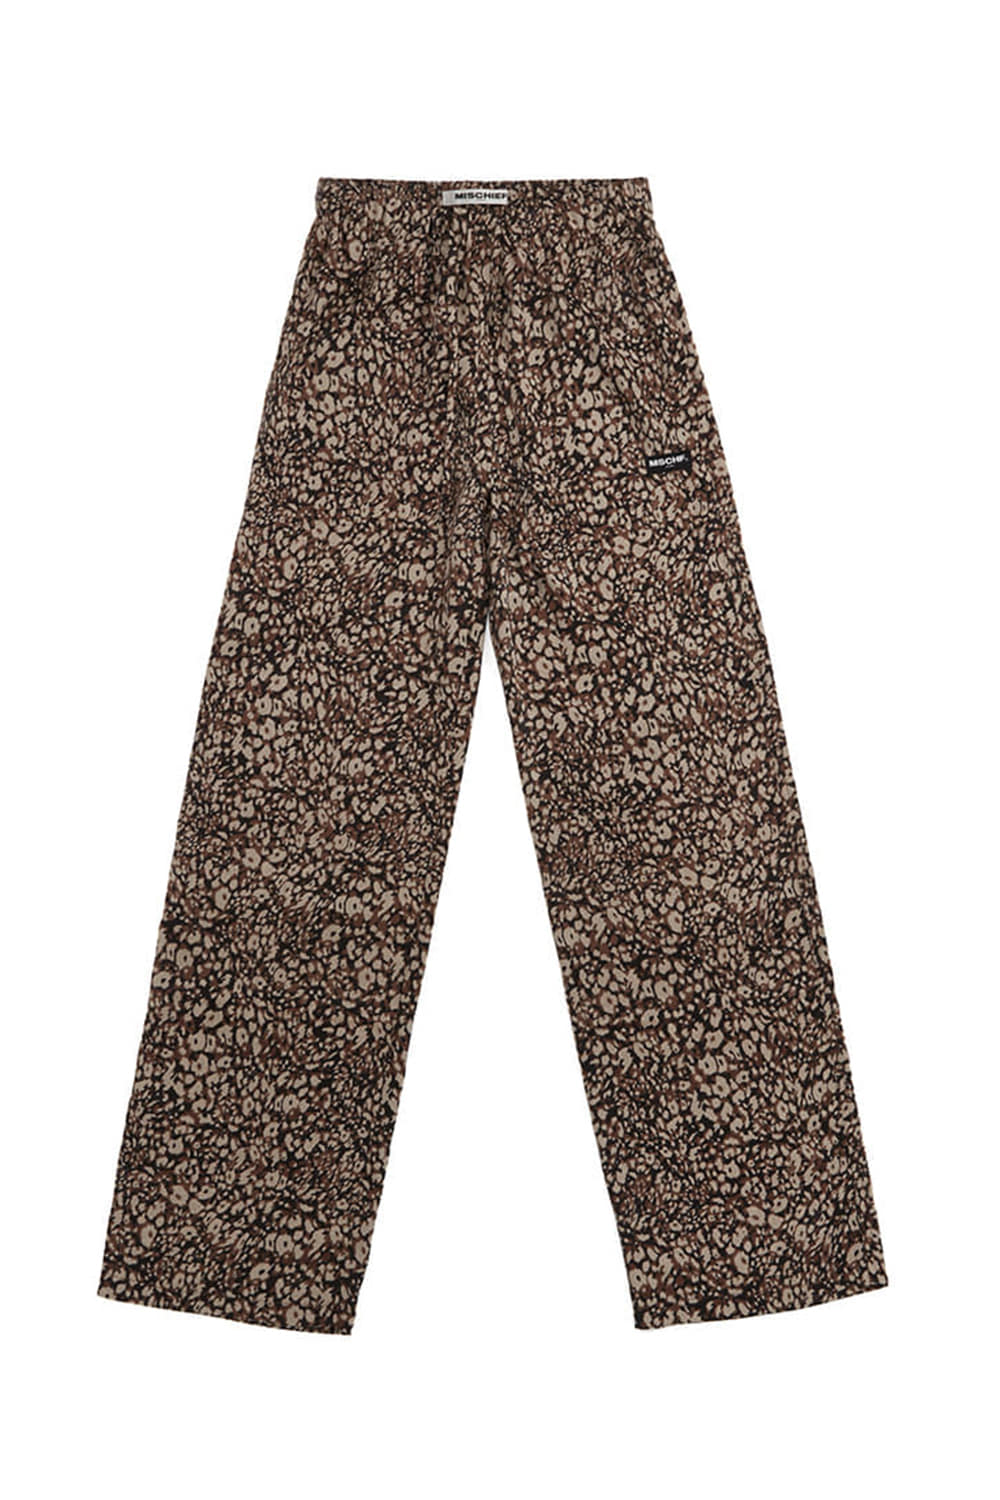 DRAWSTRING TROUSERS_leopard